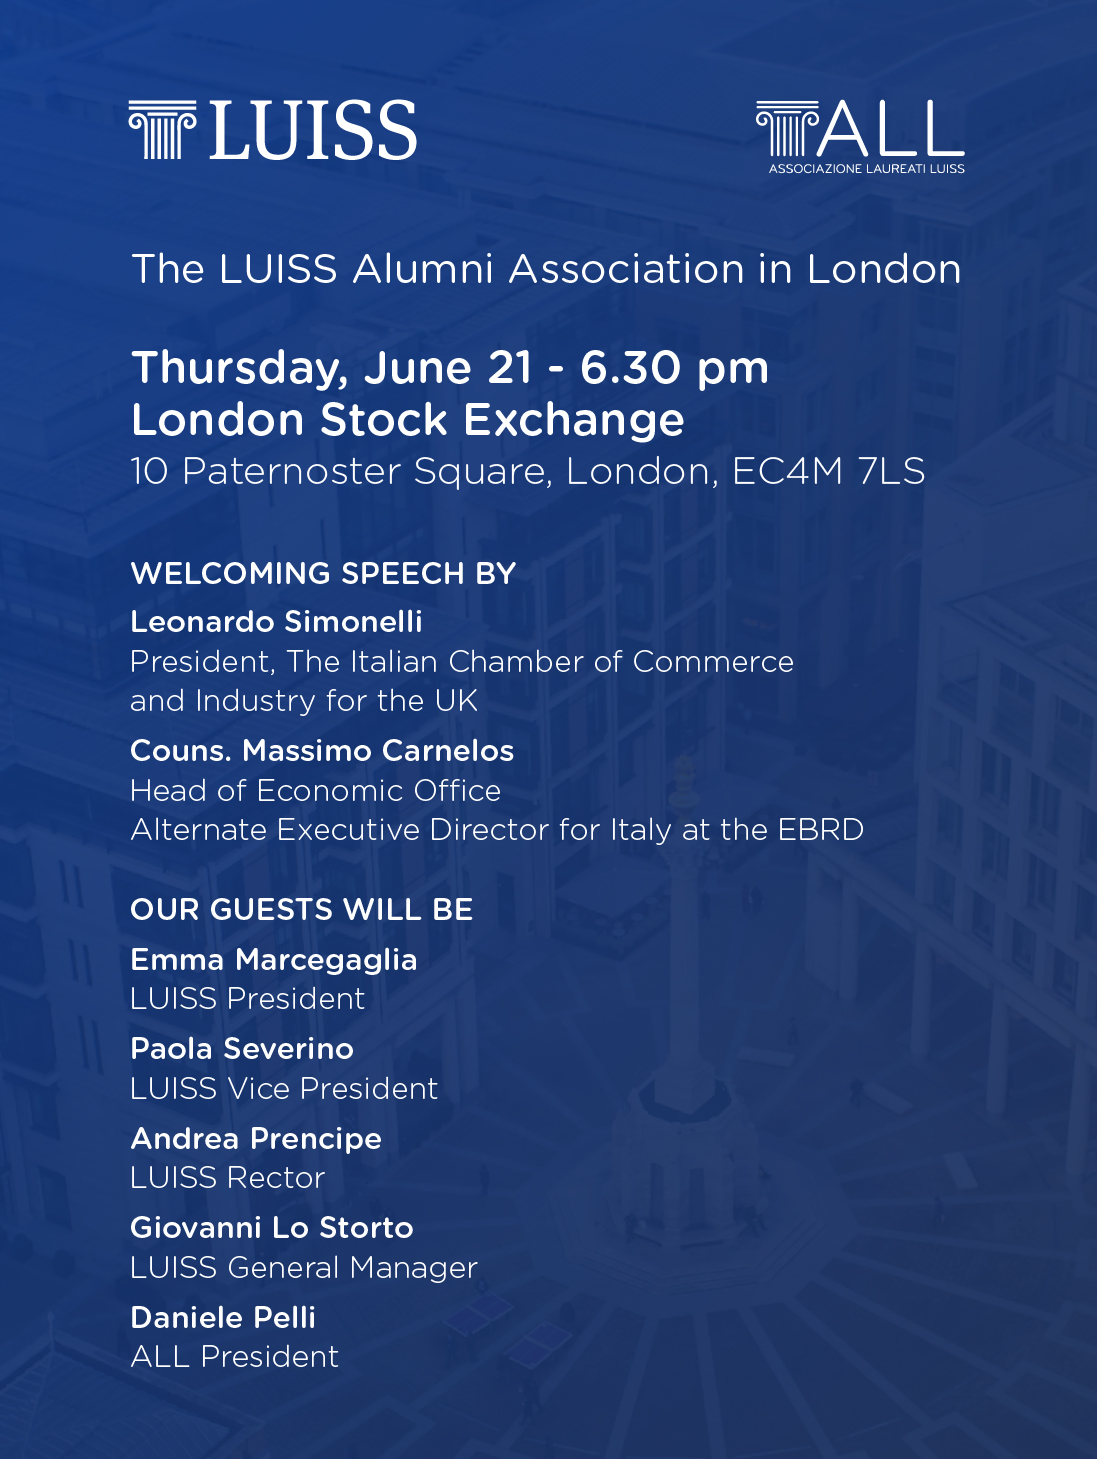 ALL London: networking cocktail – Luiss Associazione Laureati